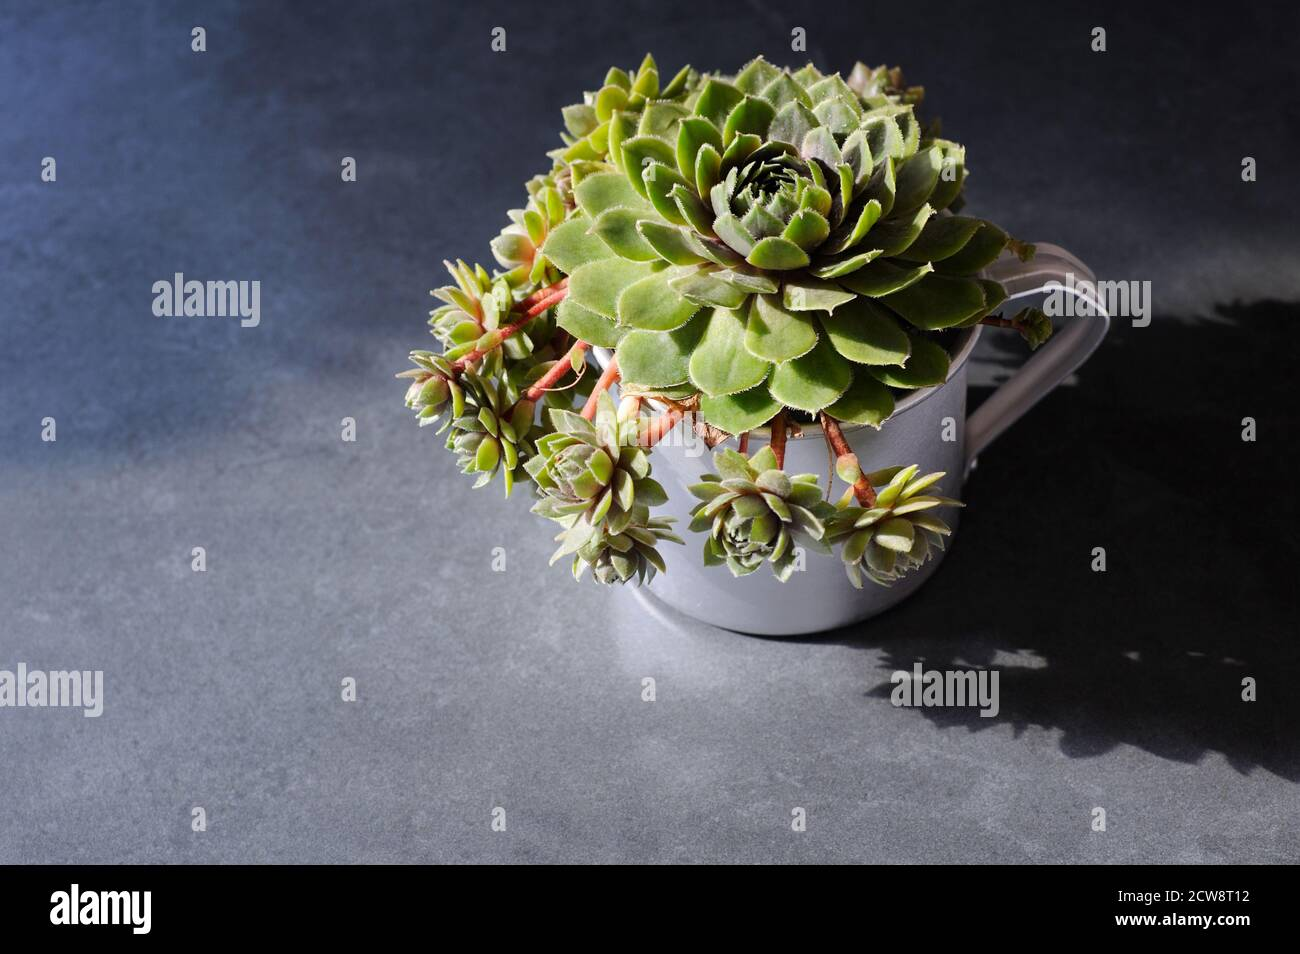 Homegrown succulent plant in the сup on the gray background with natural sunlight and hard shadows.Horizontal orientation with place for text. Stock Photo